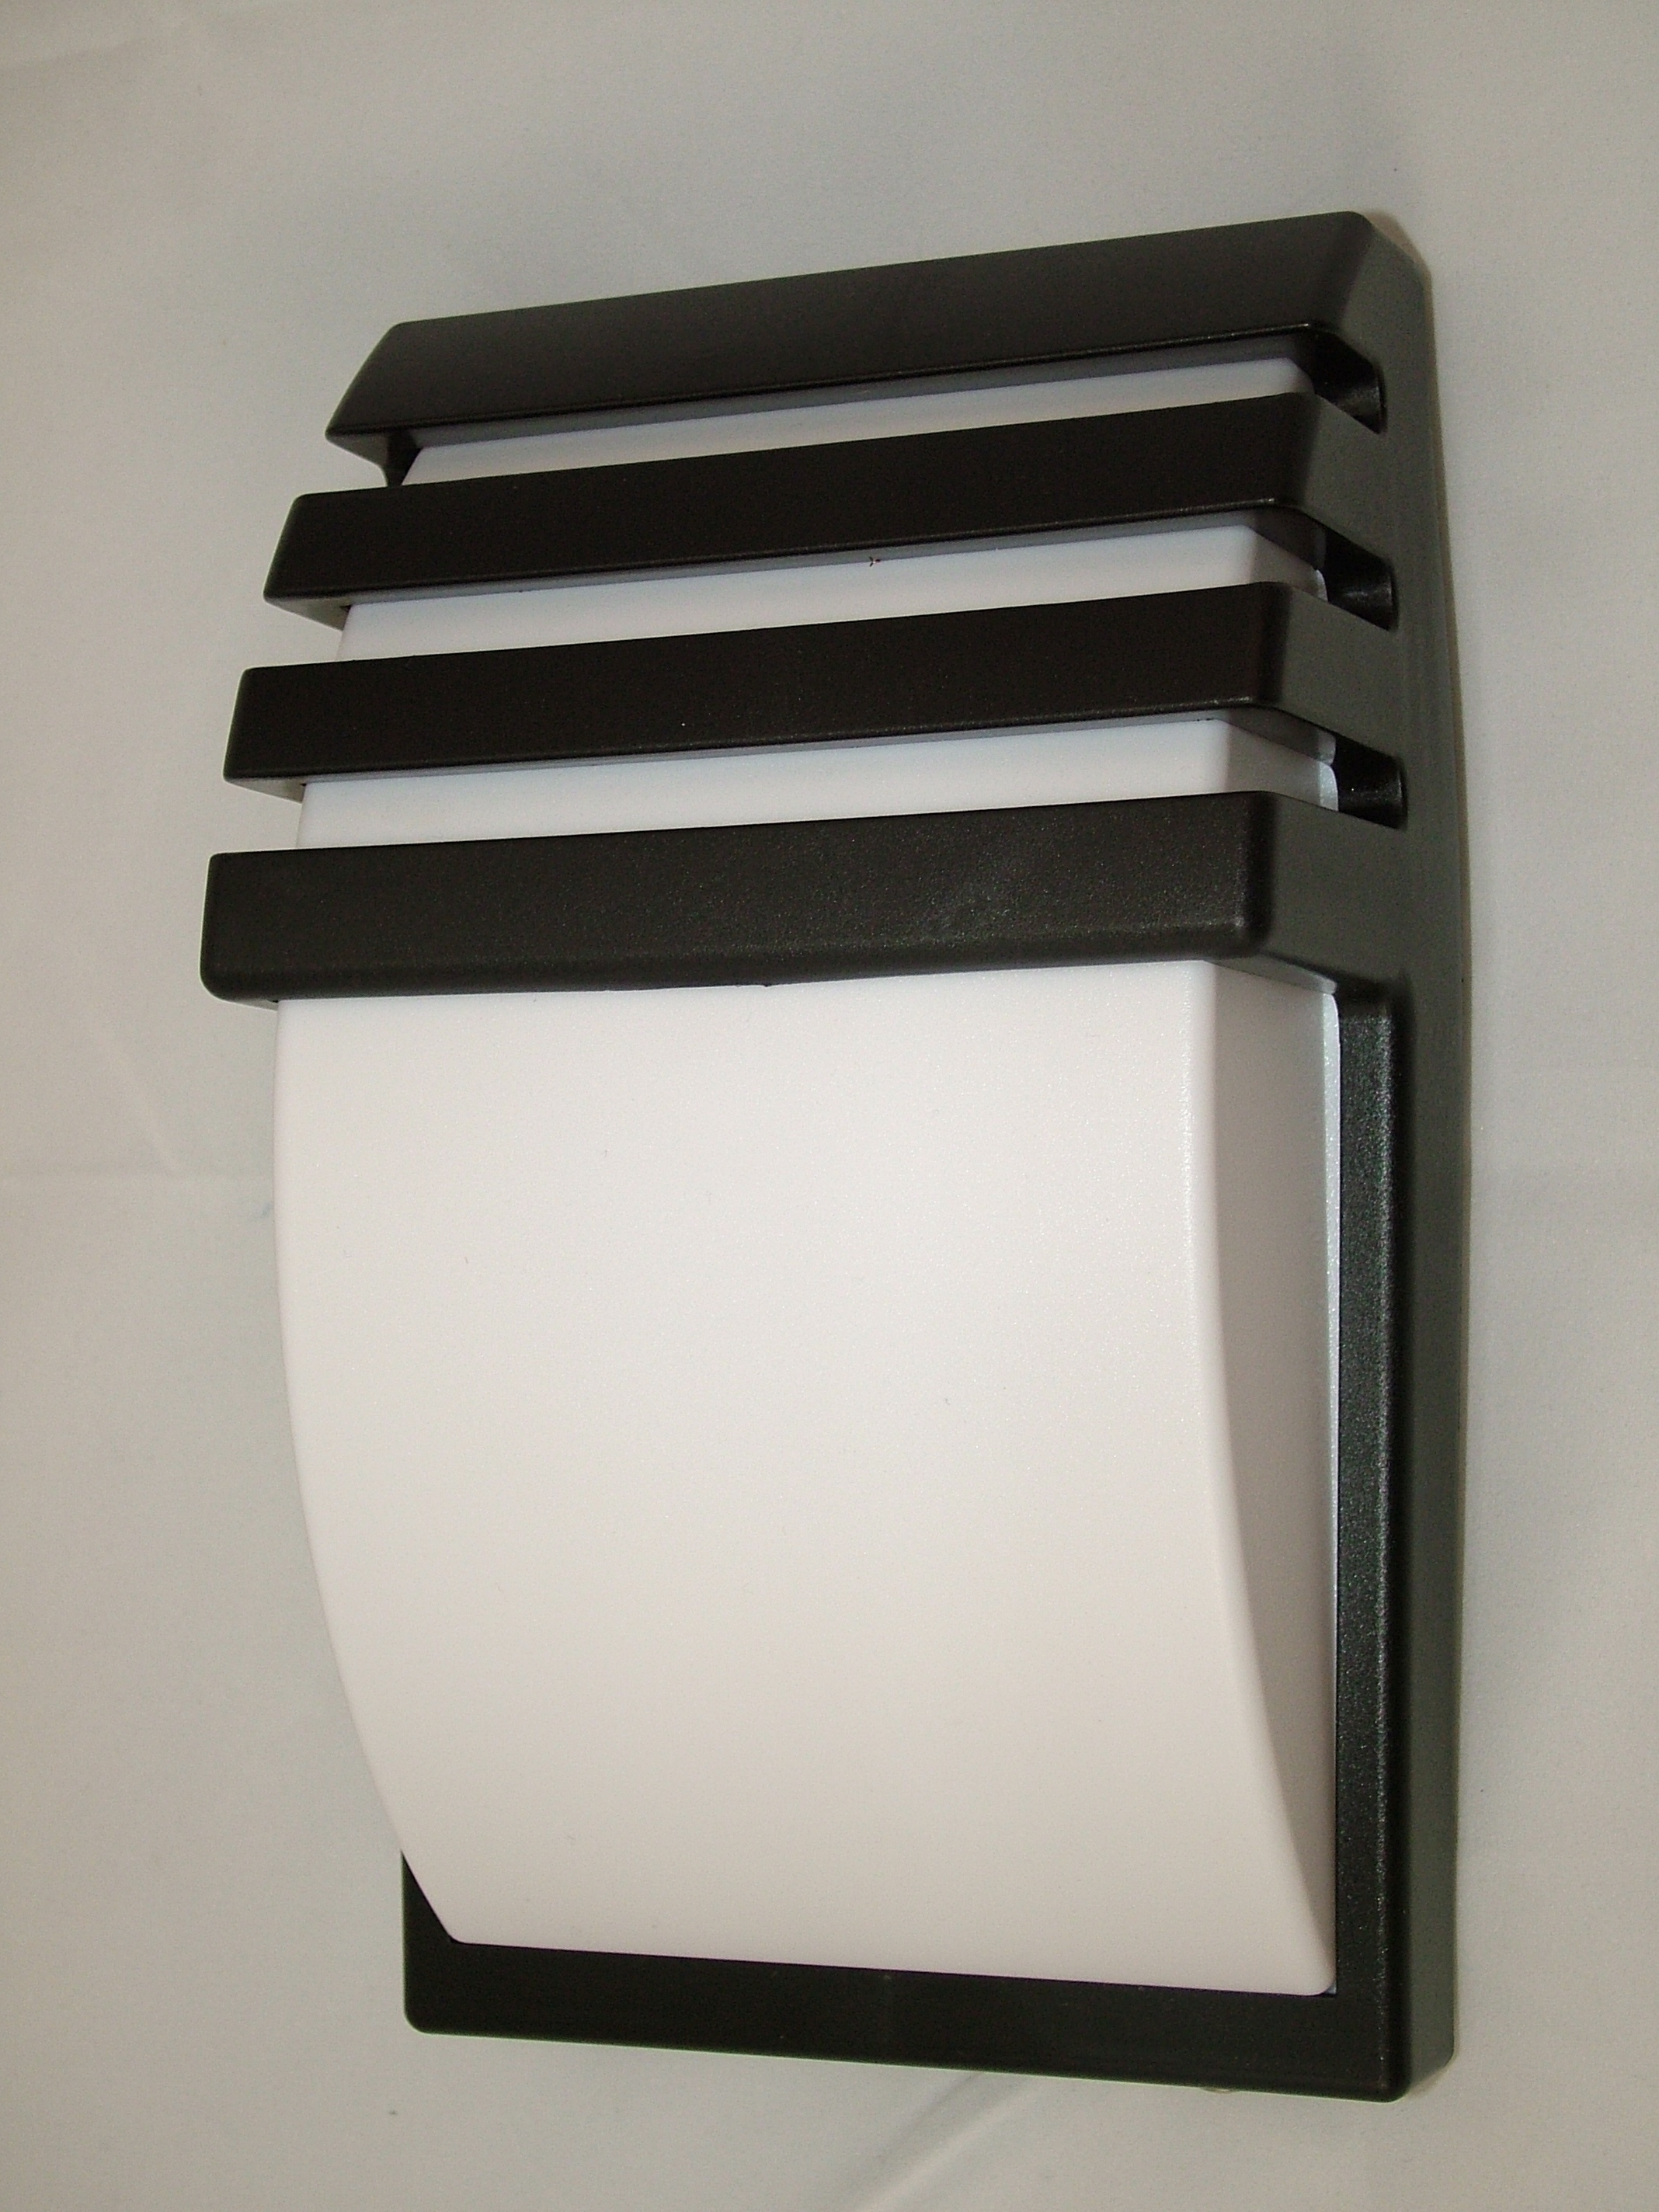 Large Outdoor Modern Wall Mounted Lighting Fixtures With Black Intended For Current Led Outdoor Wall Lighting (View 5 of 20)